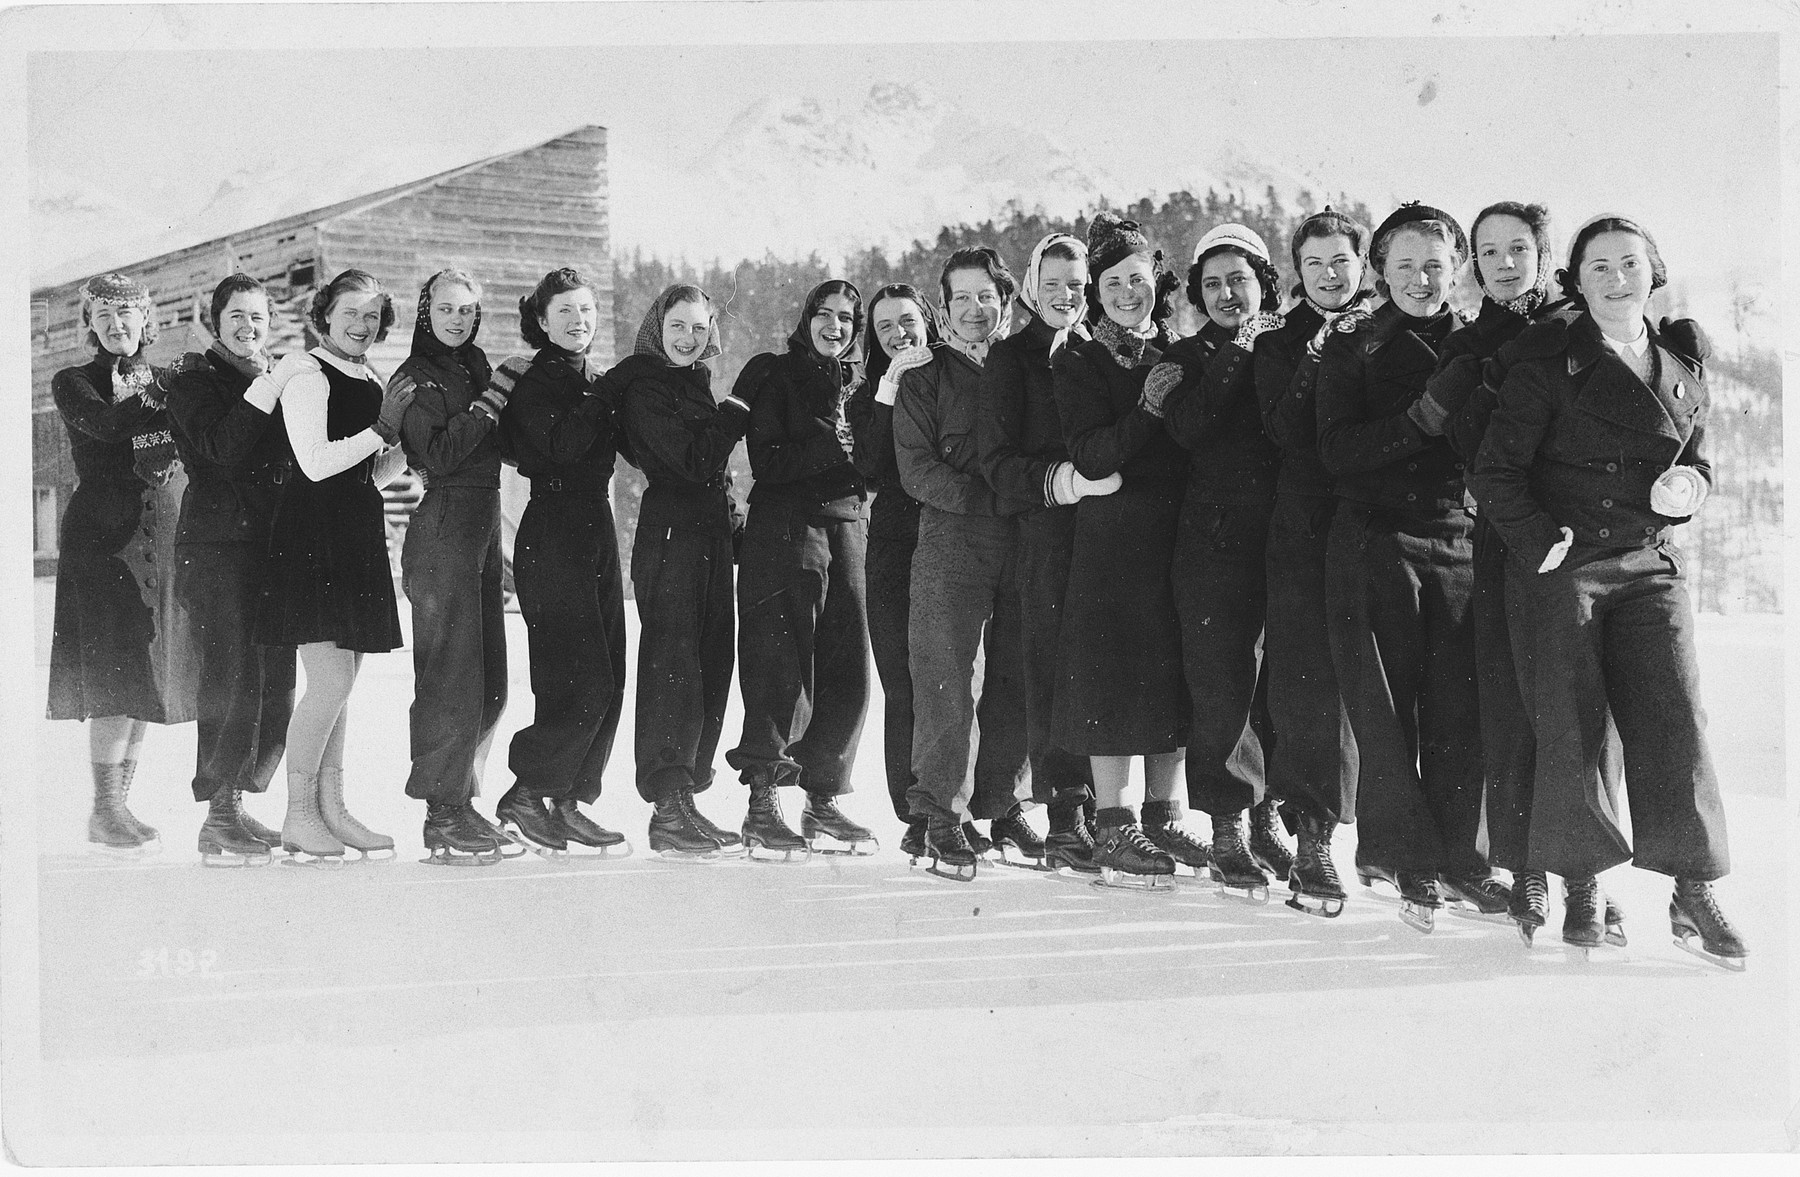 A group of boarding school students go skating together in Saint Moritz.  Among them is Ella Feuerwerk (sixth from the right), an Austrian Jew.